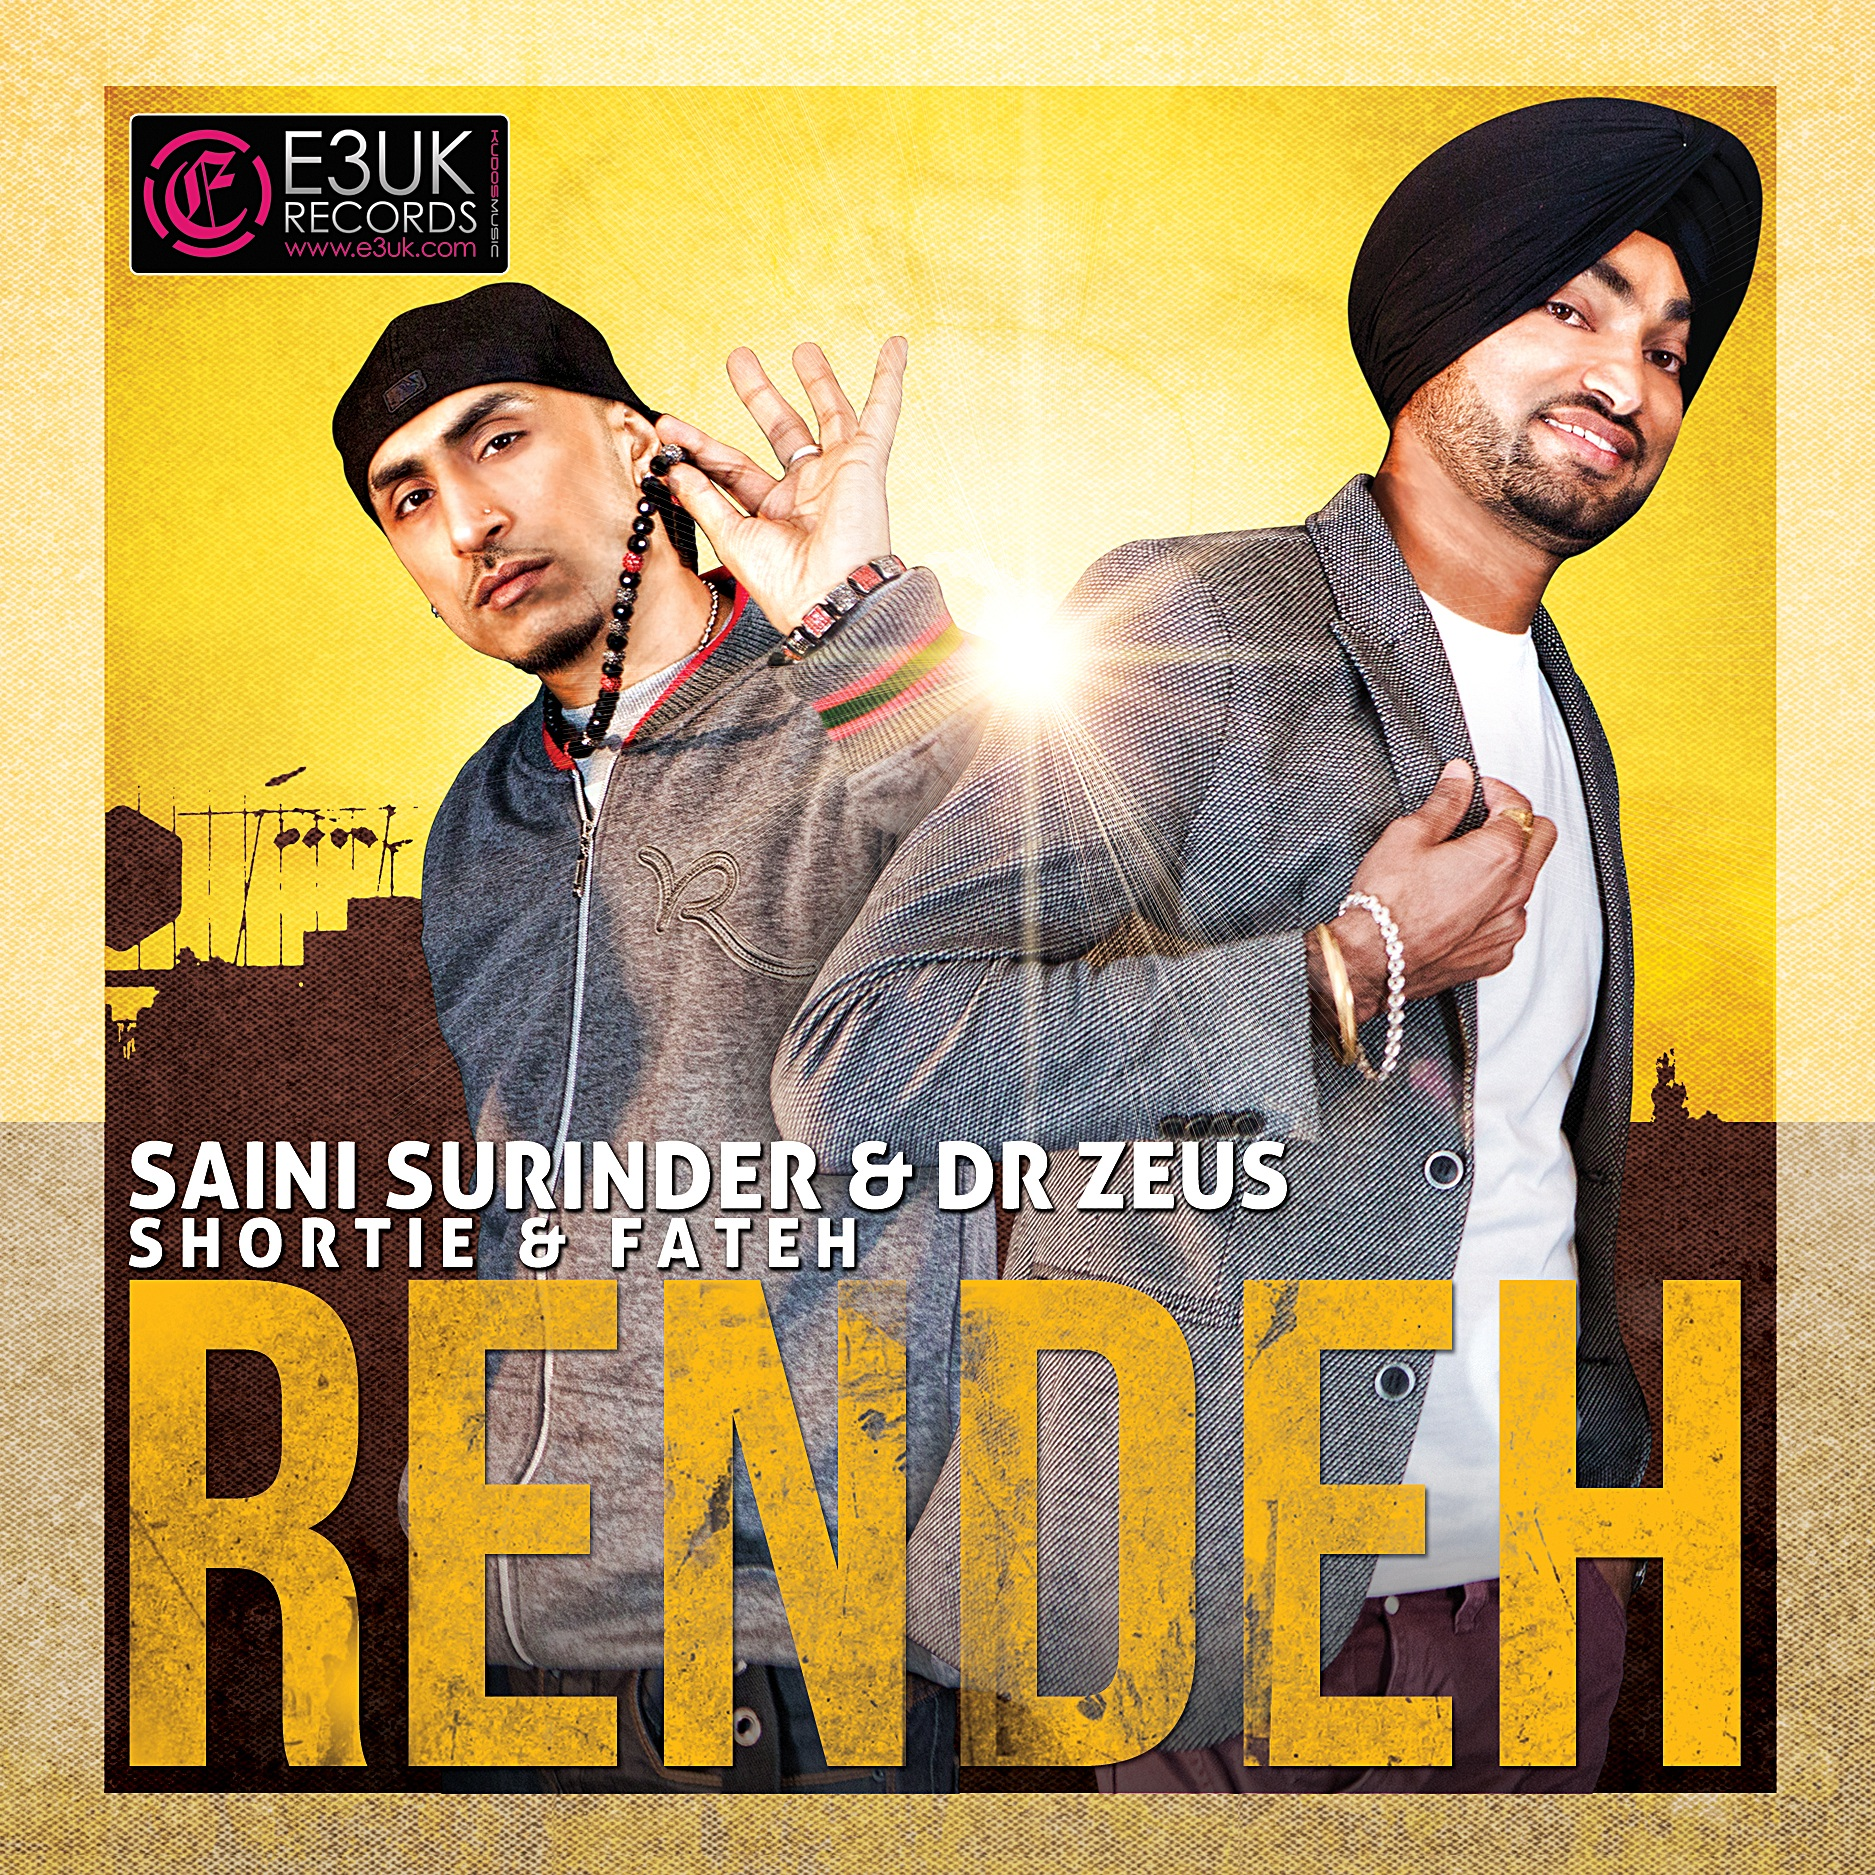 Rendeh_single_cover_PR_